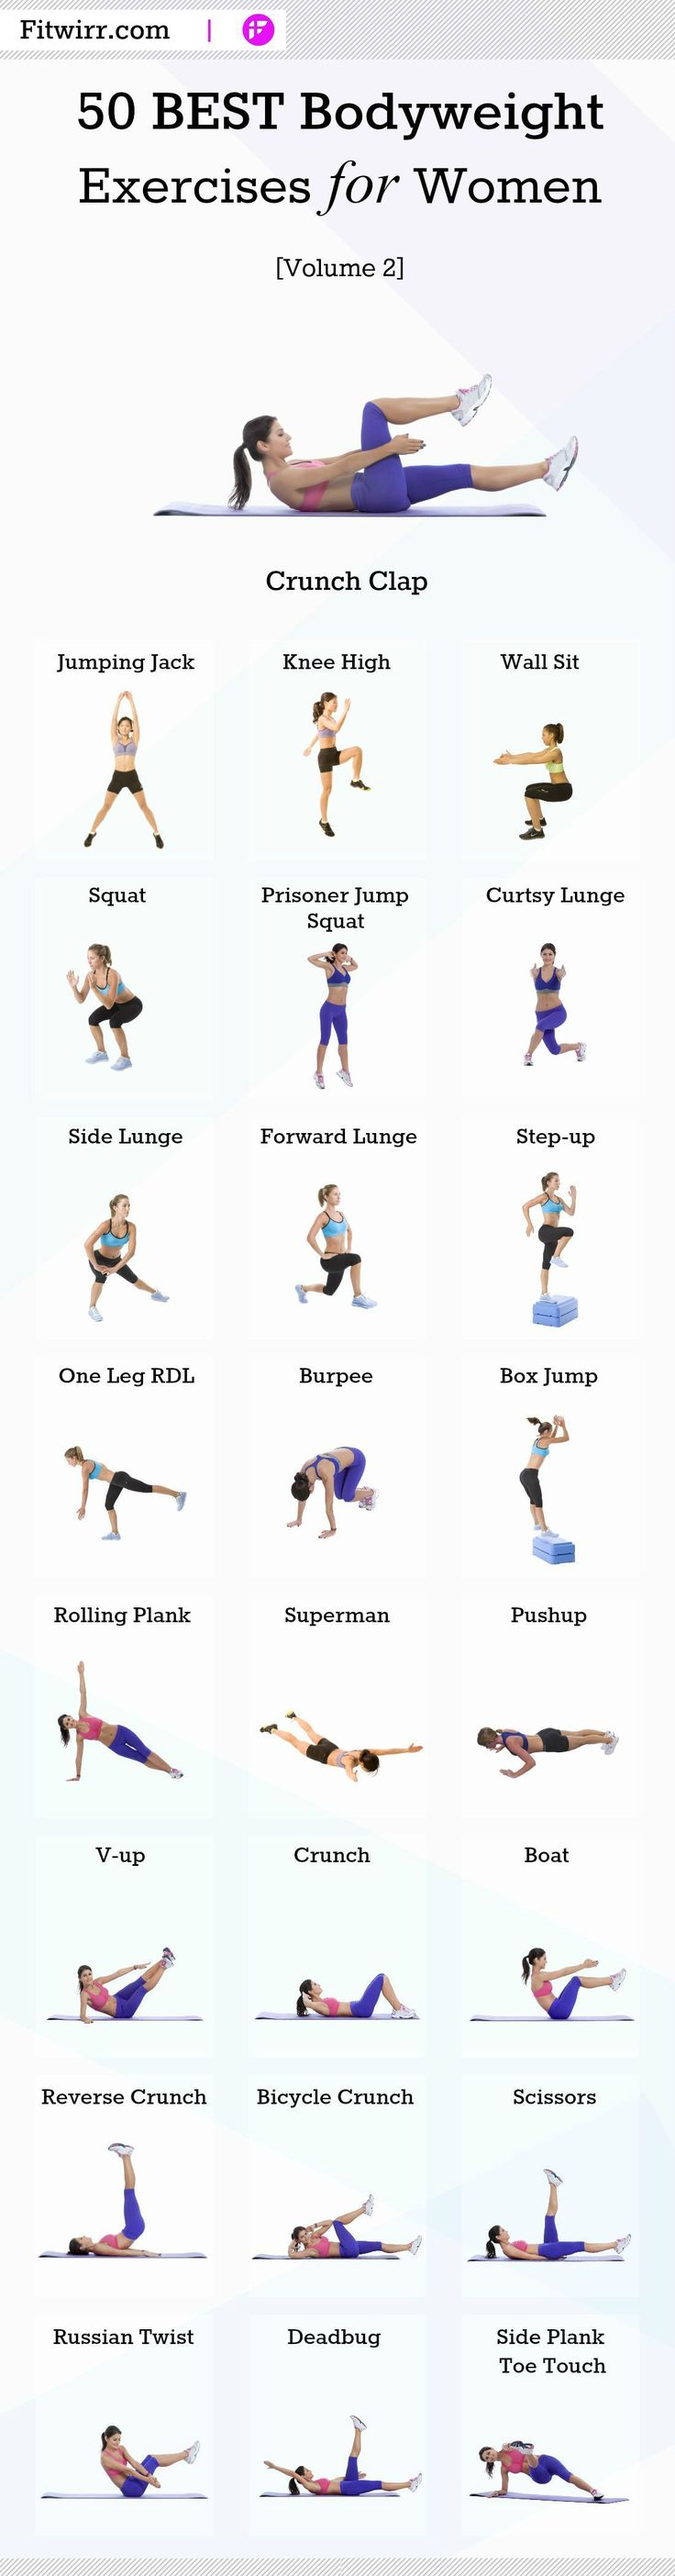 Exercises beginners can take on that can be done in the comfort of your home.